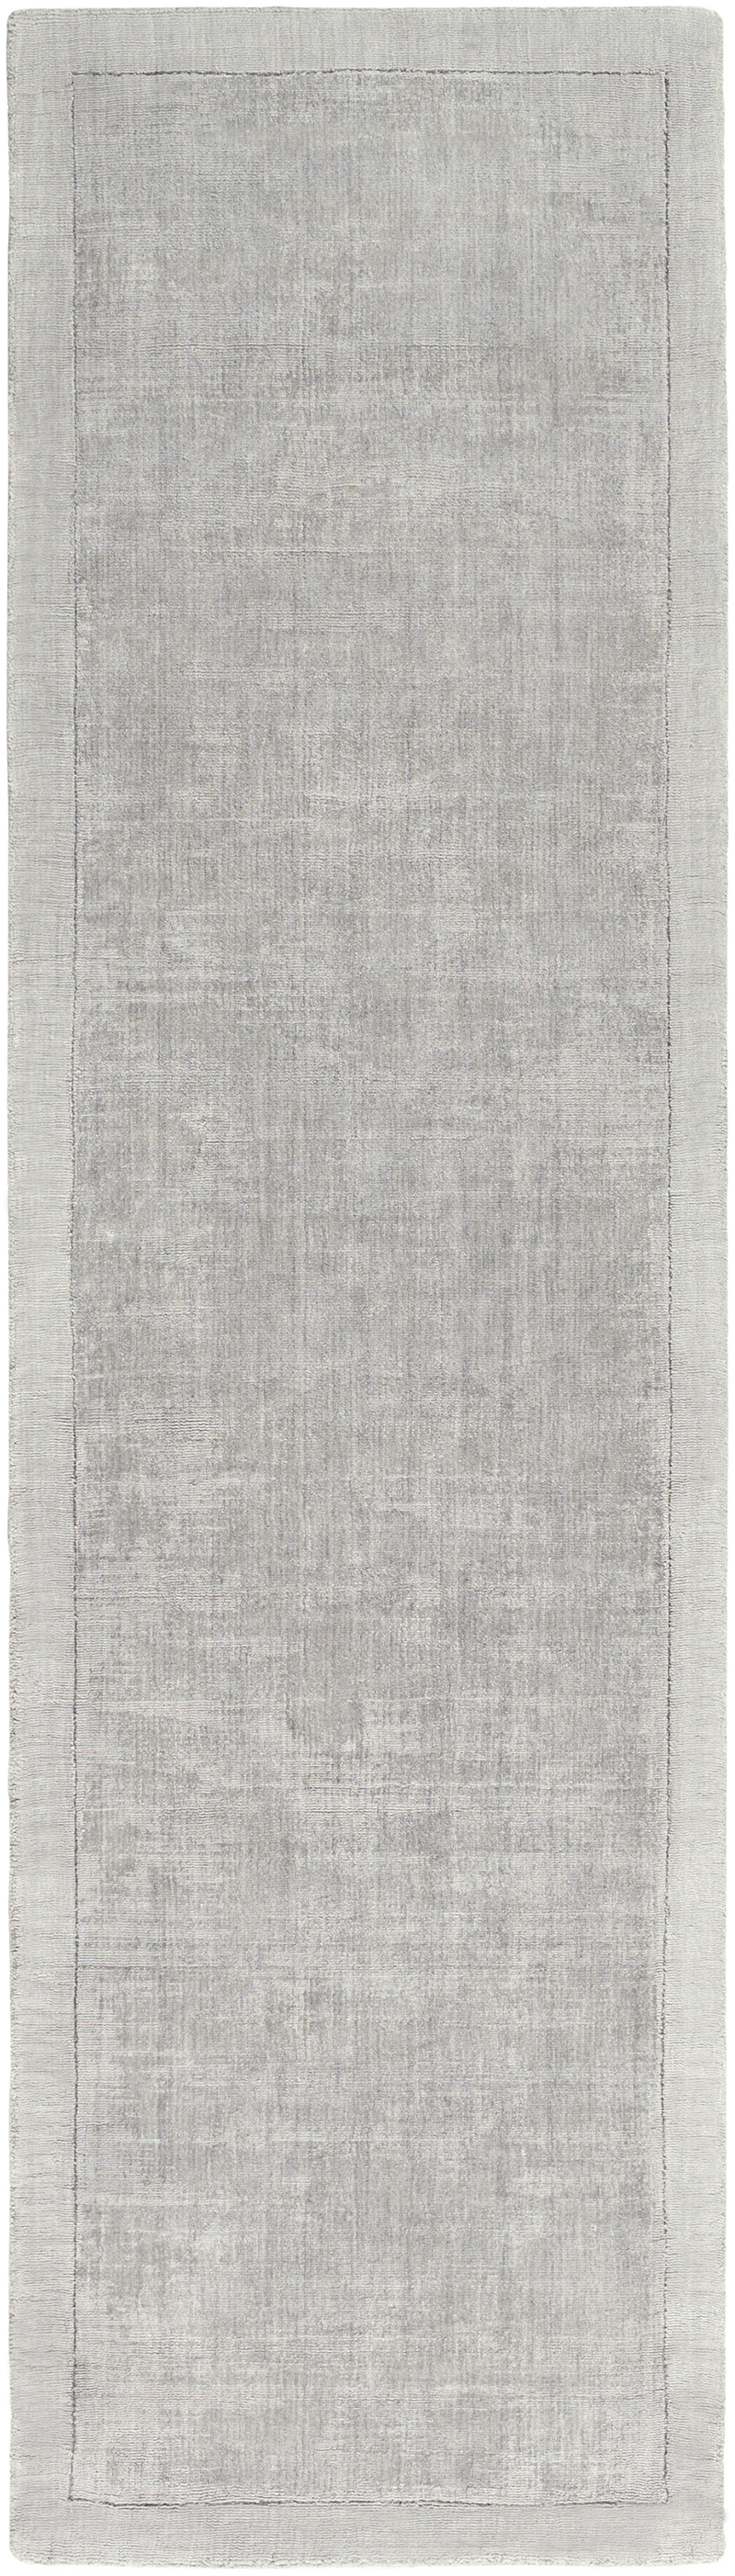 Surya Silk Route AWSR-4036 Area Rug